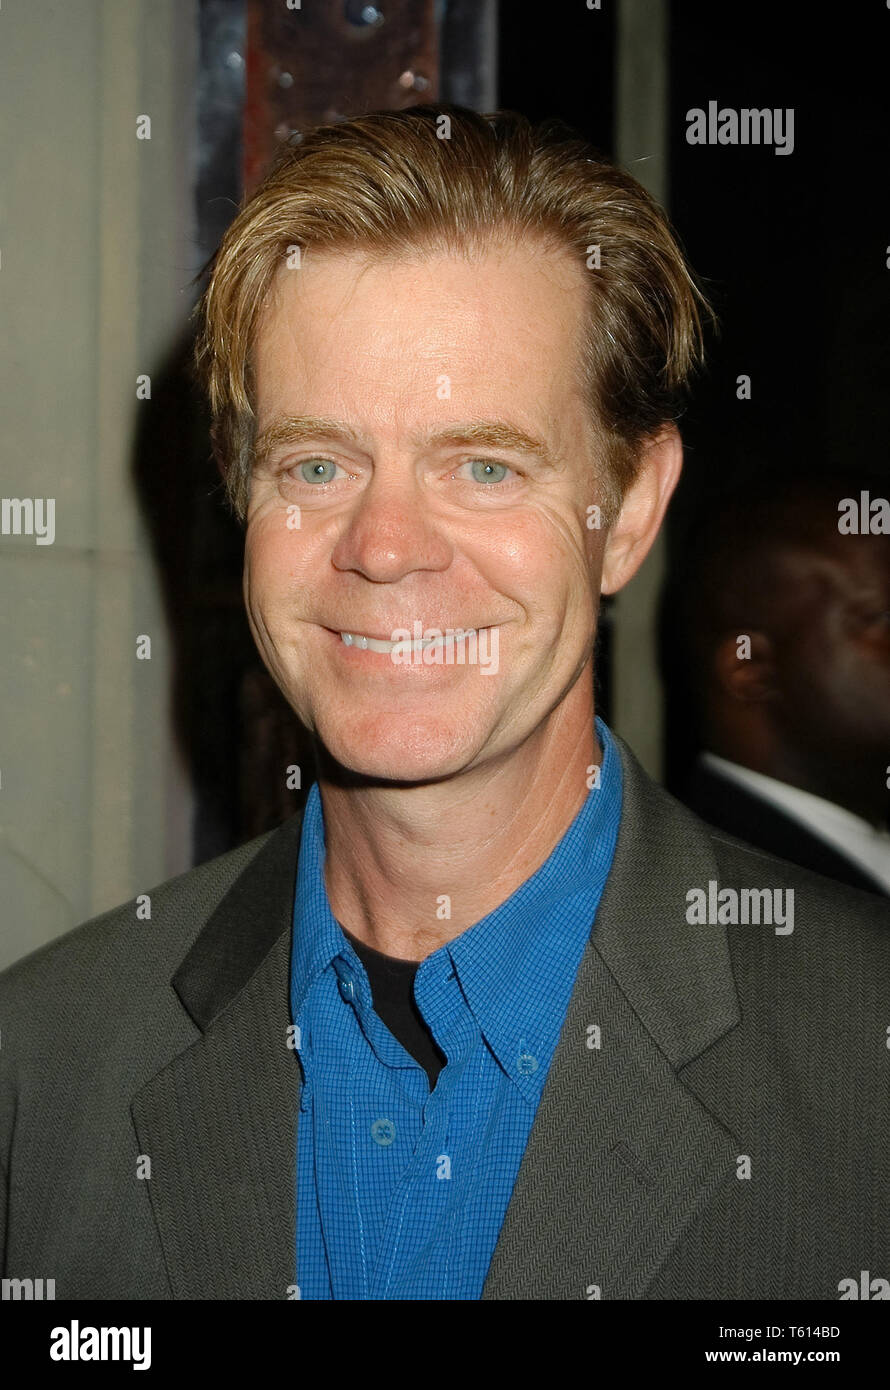 William H. Macy at the Academy of Television Arts & Sciences dinner honoring the 55th Annual Primetime Emmy Awards Nominees for Outstanding Performing Talent at Spagos in Beverly Hills, CA. The event took place on Thursday, September 18, 2003. Photo by: SBM / PictureLux  File Reference # 33790_1830SBMPLX - Stock Image